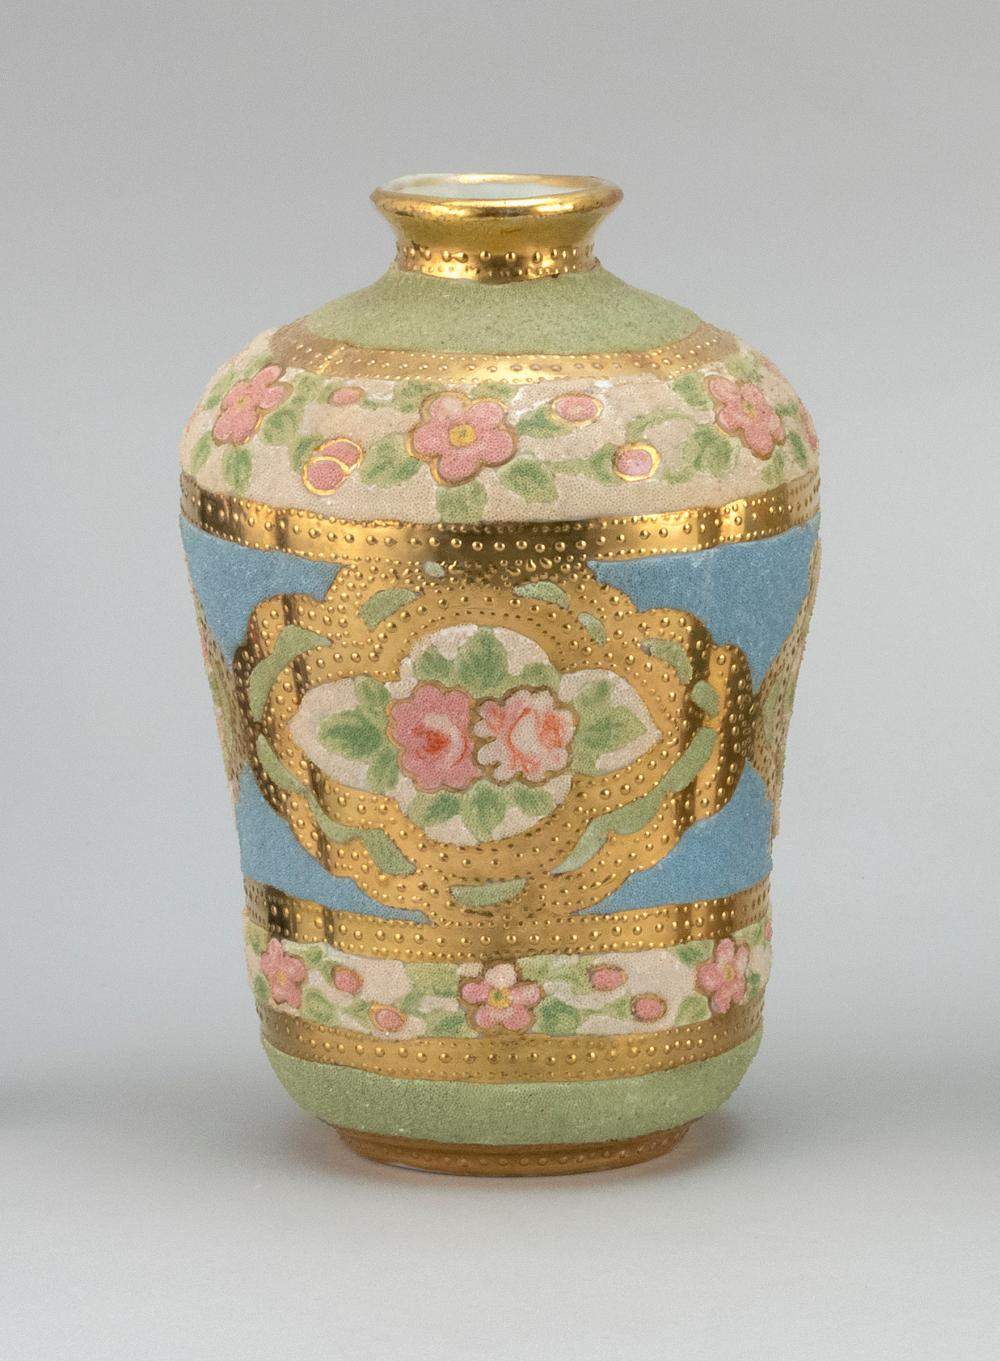 """CORALINE NIPPON PORCELAIN VASE With rose decoration. Patent mark on base. Height 6.5""""."""